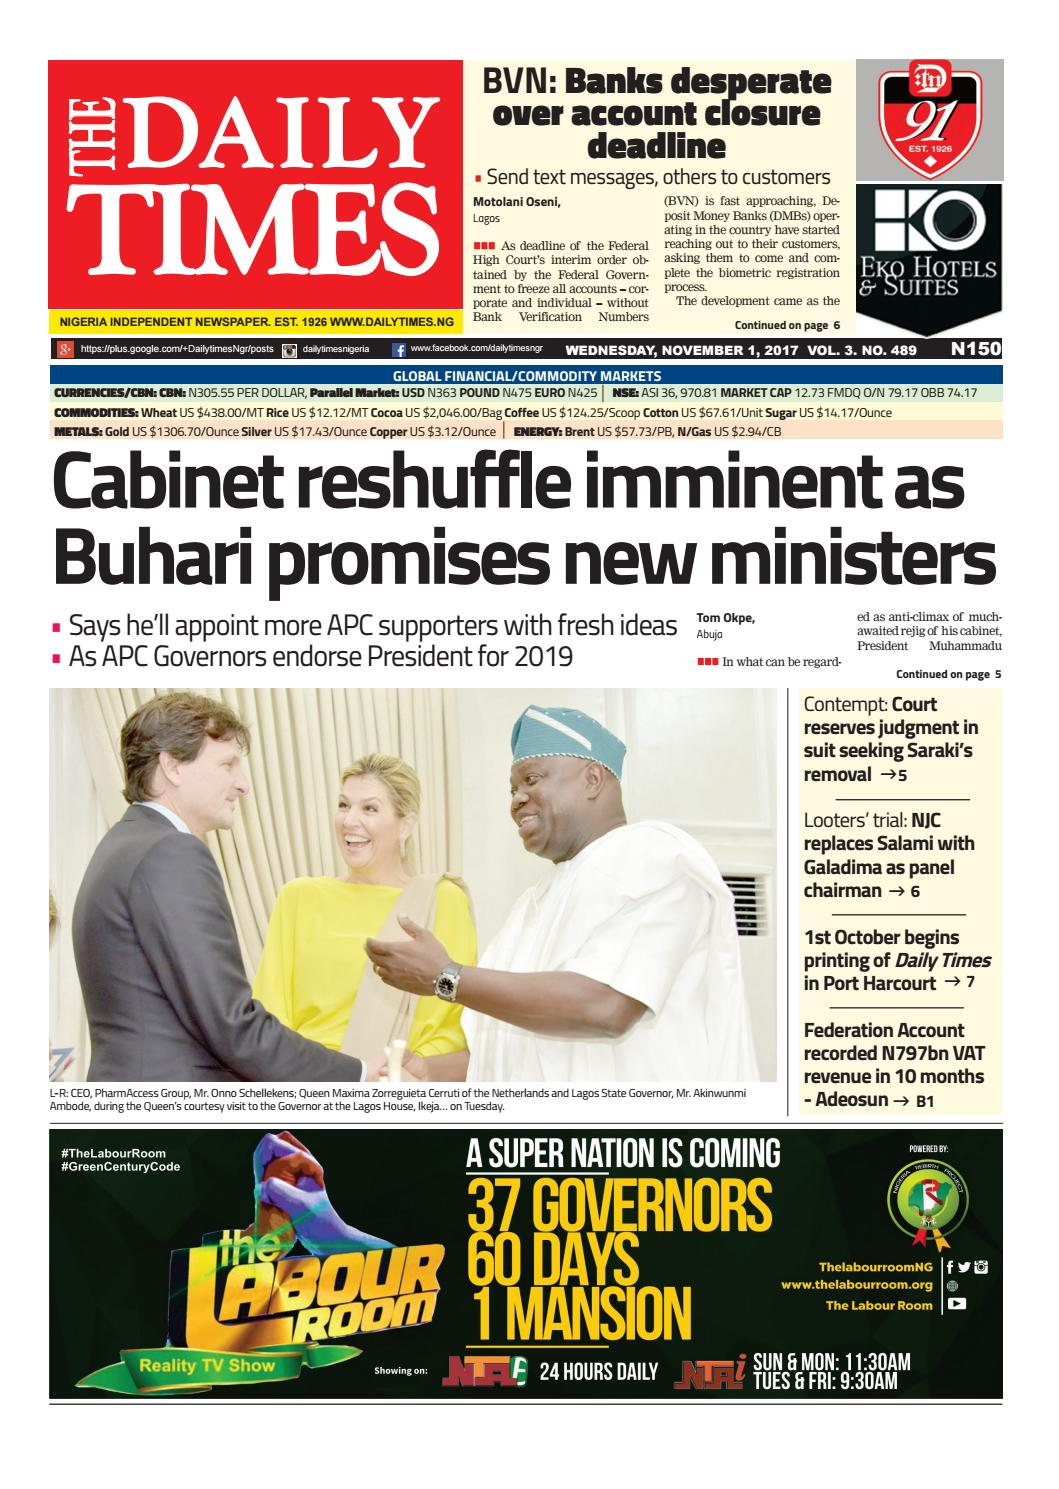 Dtn 1 11 17 by Daily Times of Nigeria - issuu